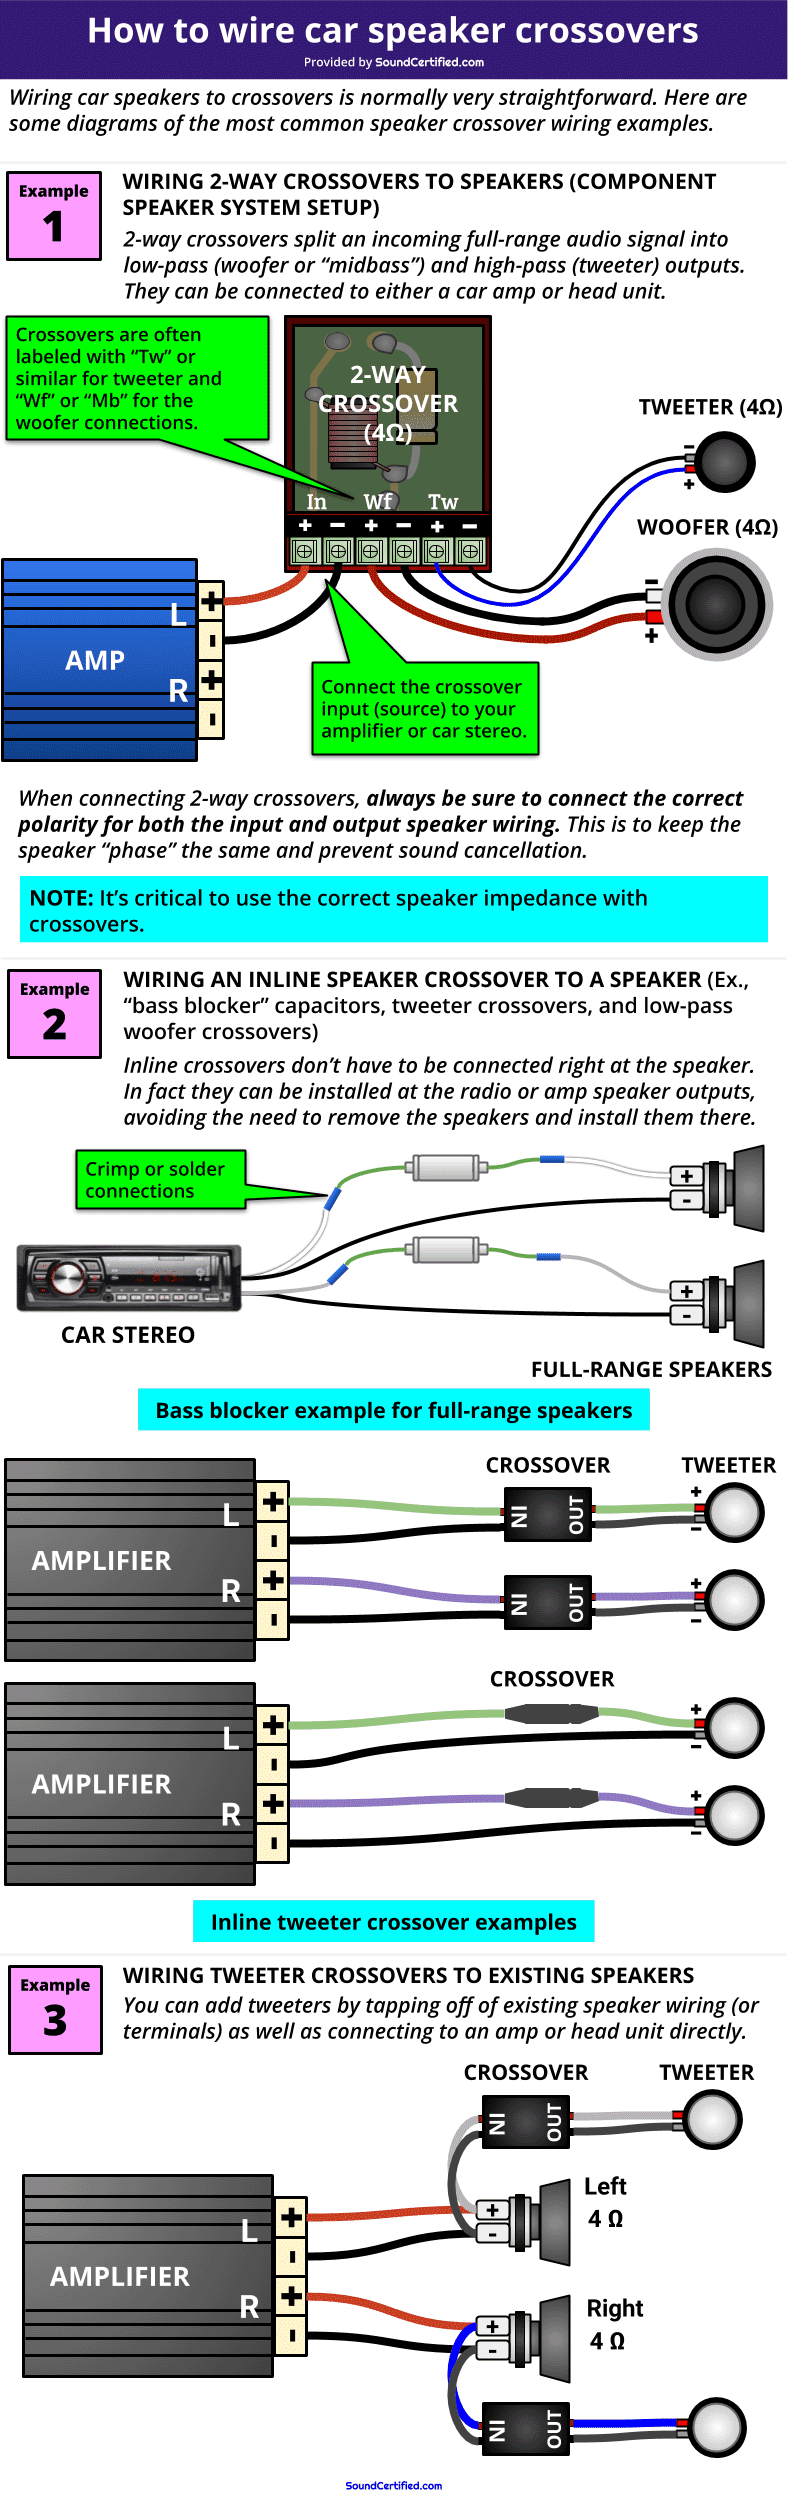 How to wire car speaker crossovers diagram